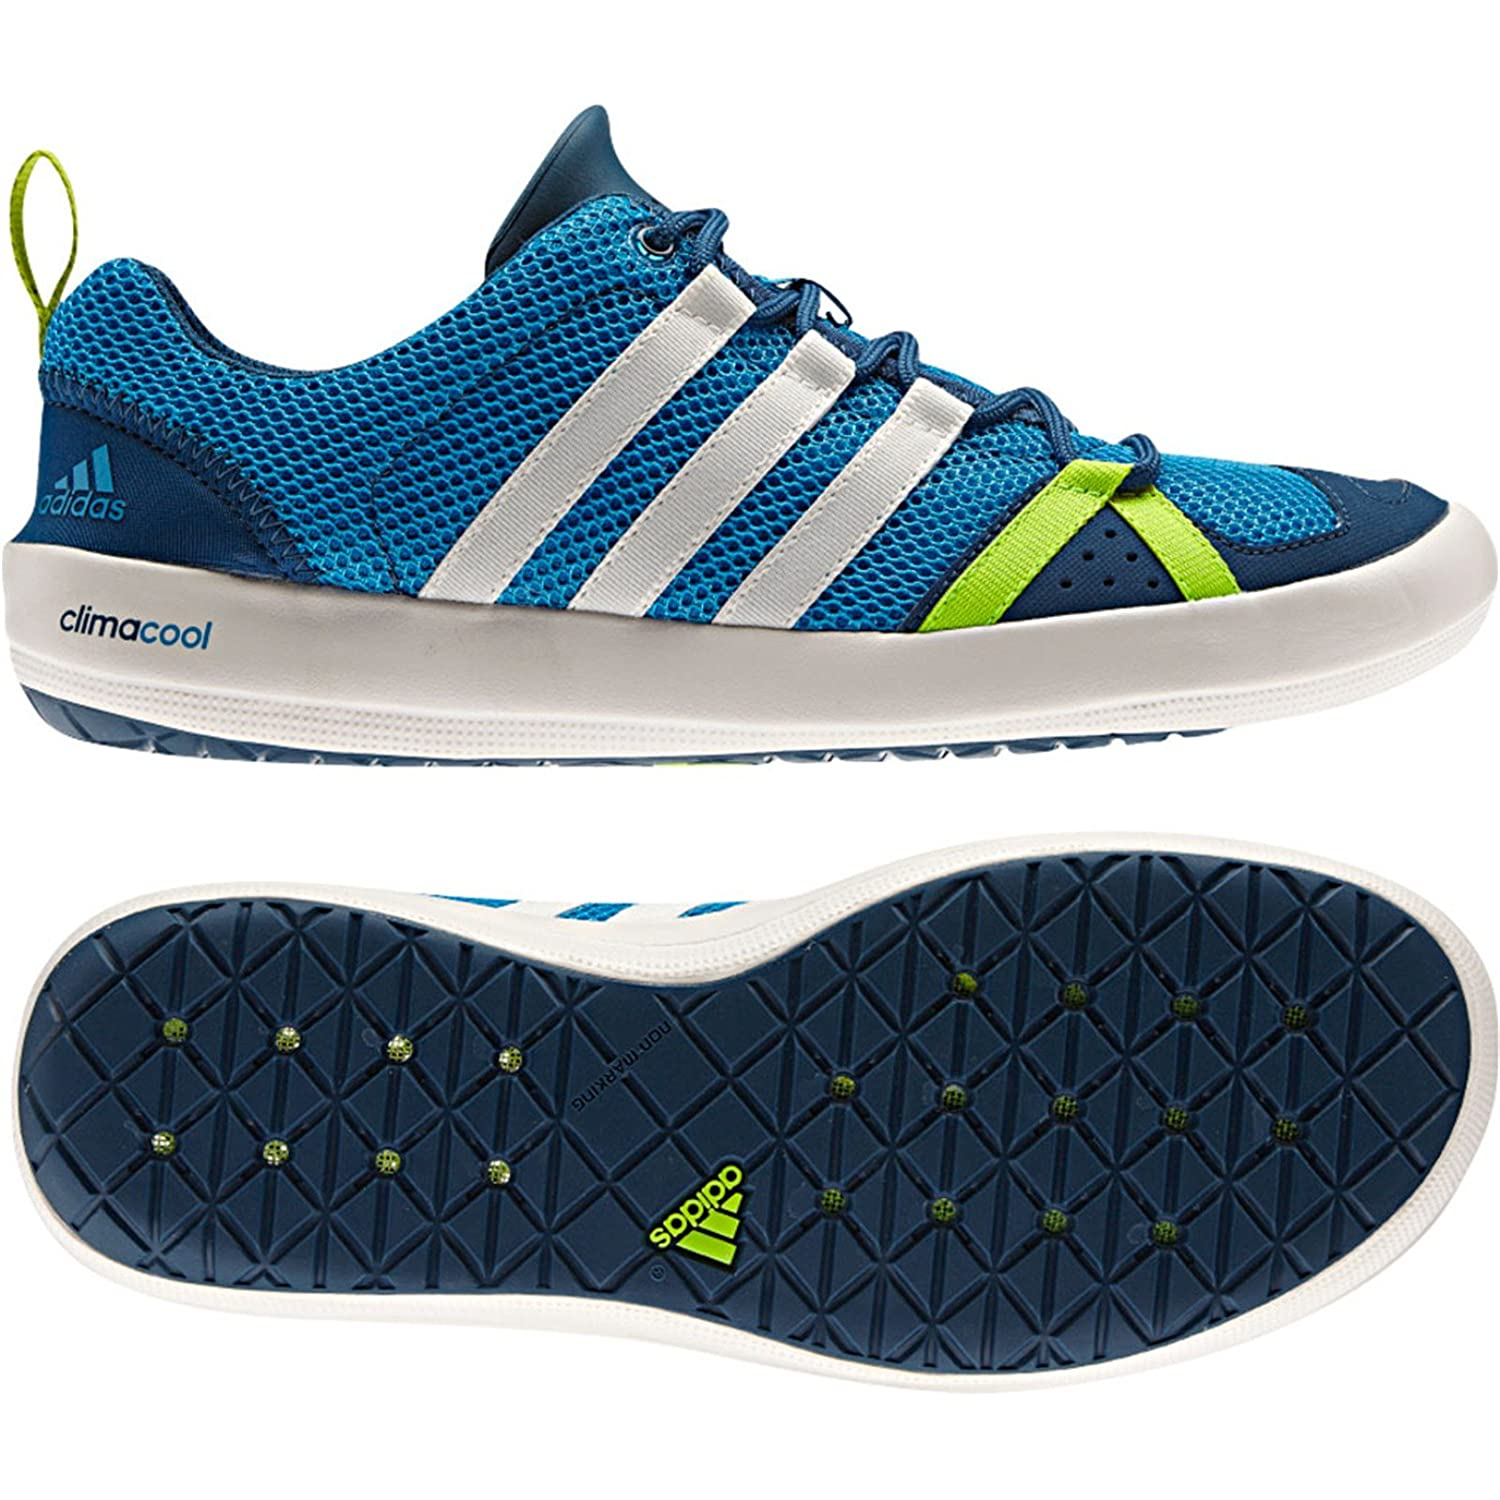 Cheap Adidas Water Grip Shoes   Sneakers, Adidas, Shoes